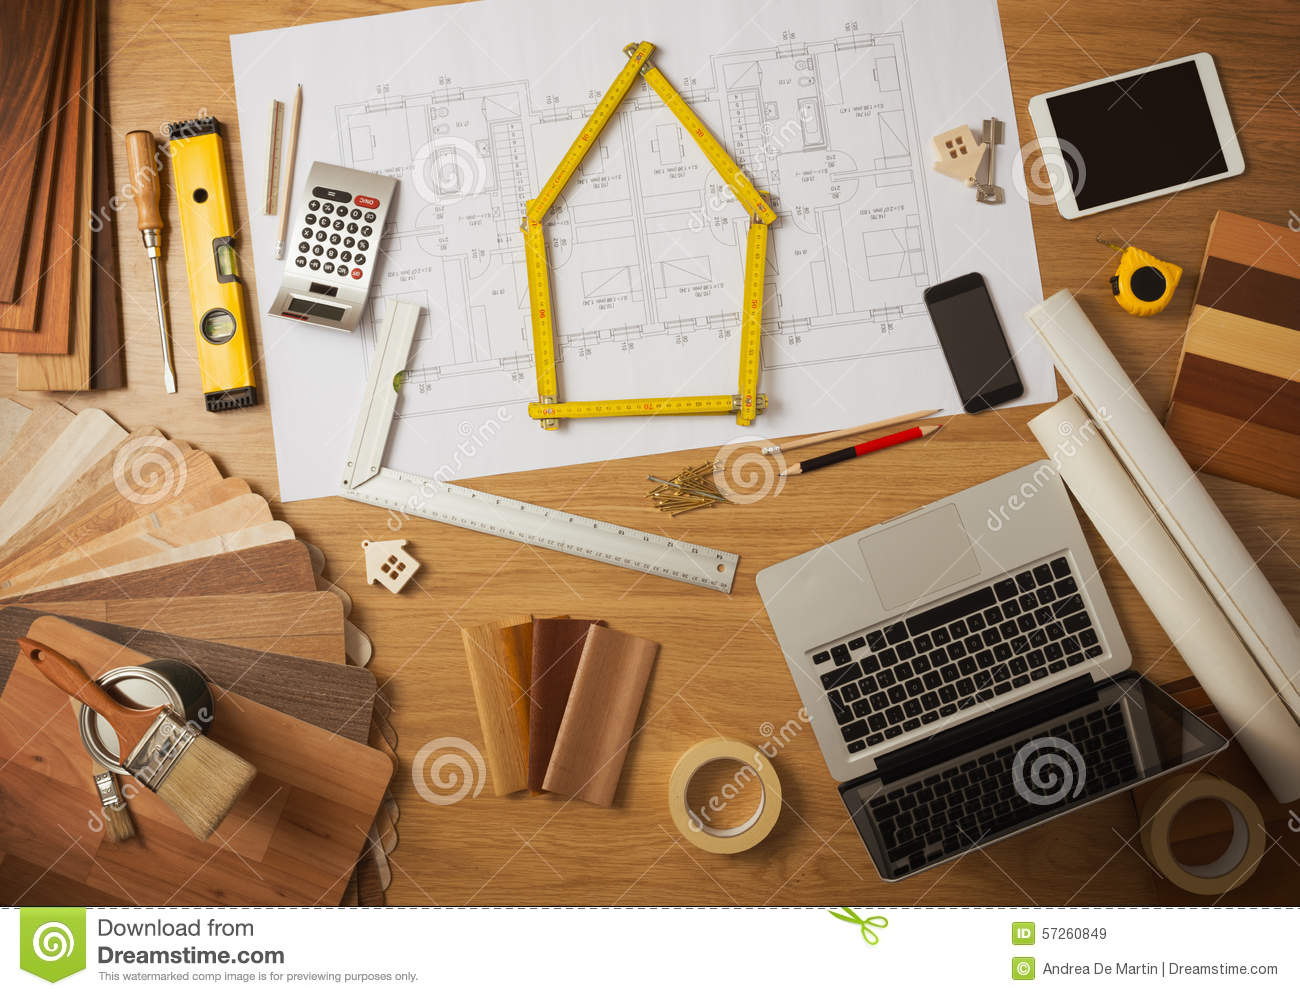 Architect and interior designer work table stock image Home interior design online tool